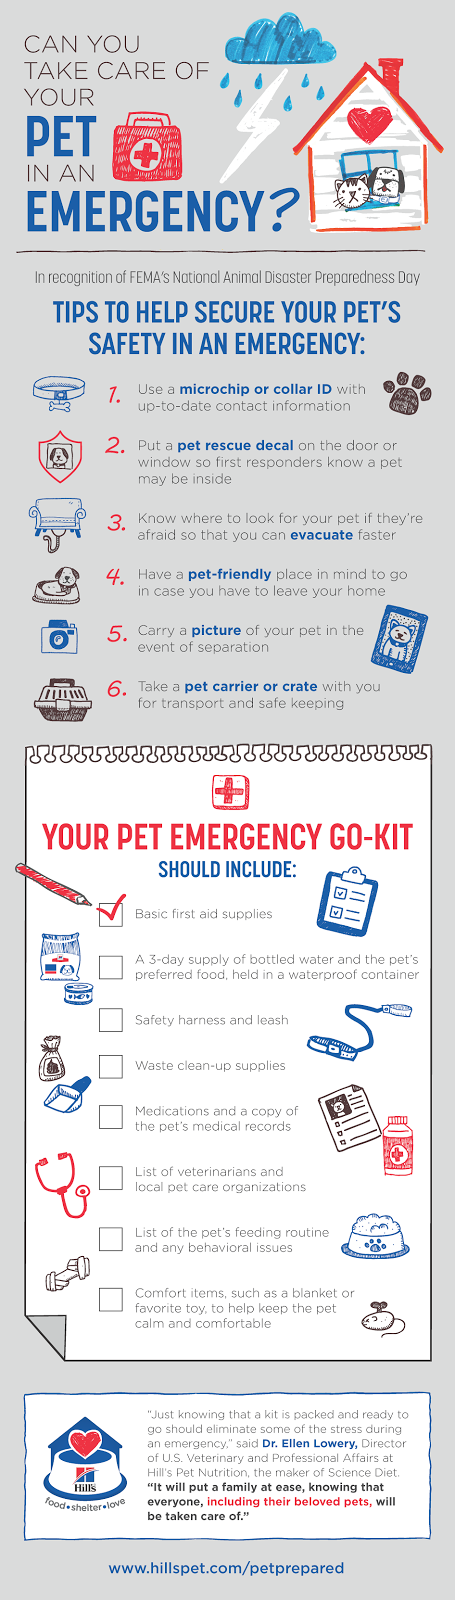 emergency go kit and disaster plan for your pet